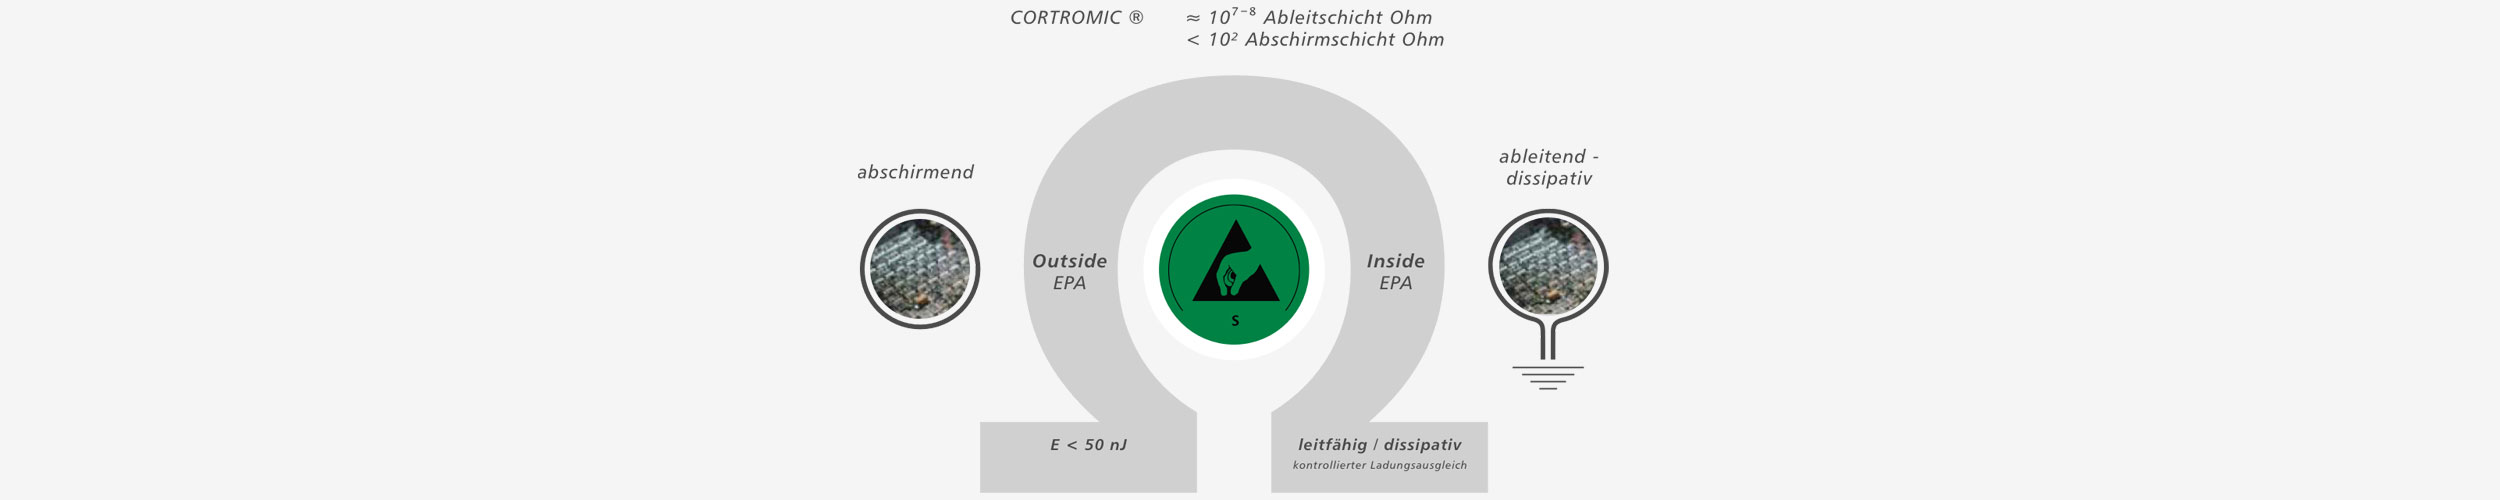 Hans Kolb CORSTAT™ and CORTRONIC® ESD protective packaging for safe use inside and outside the EPA area.